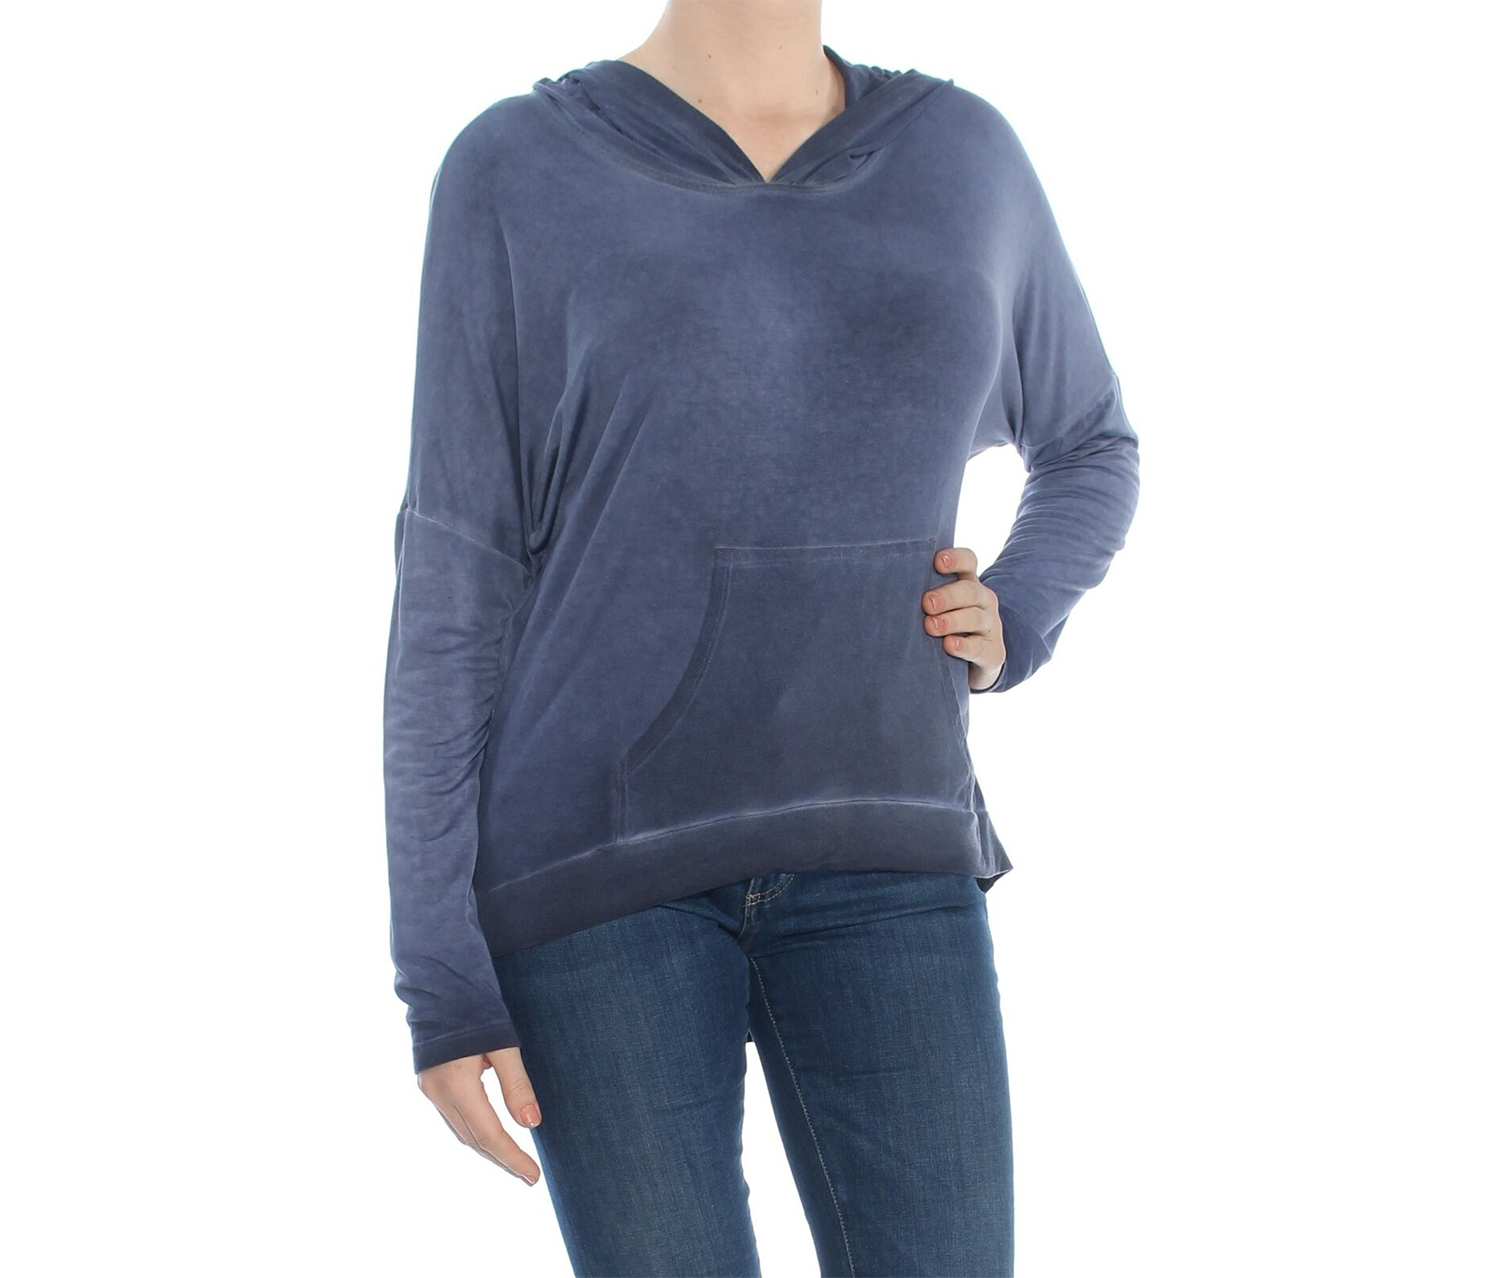 Karen Kane Women's Hooded Long Sleeve Top, Navy